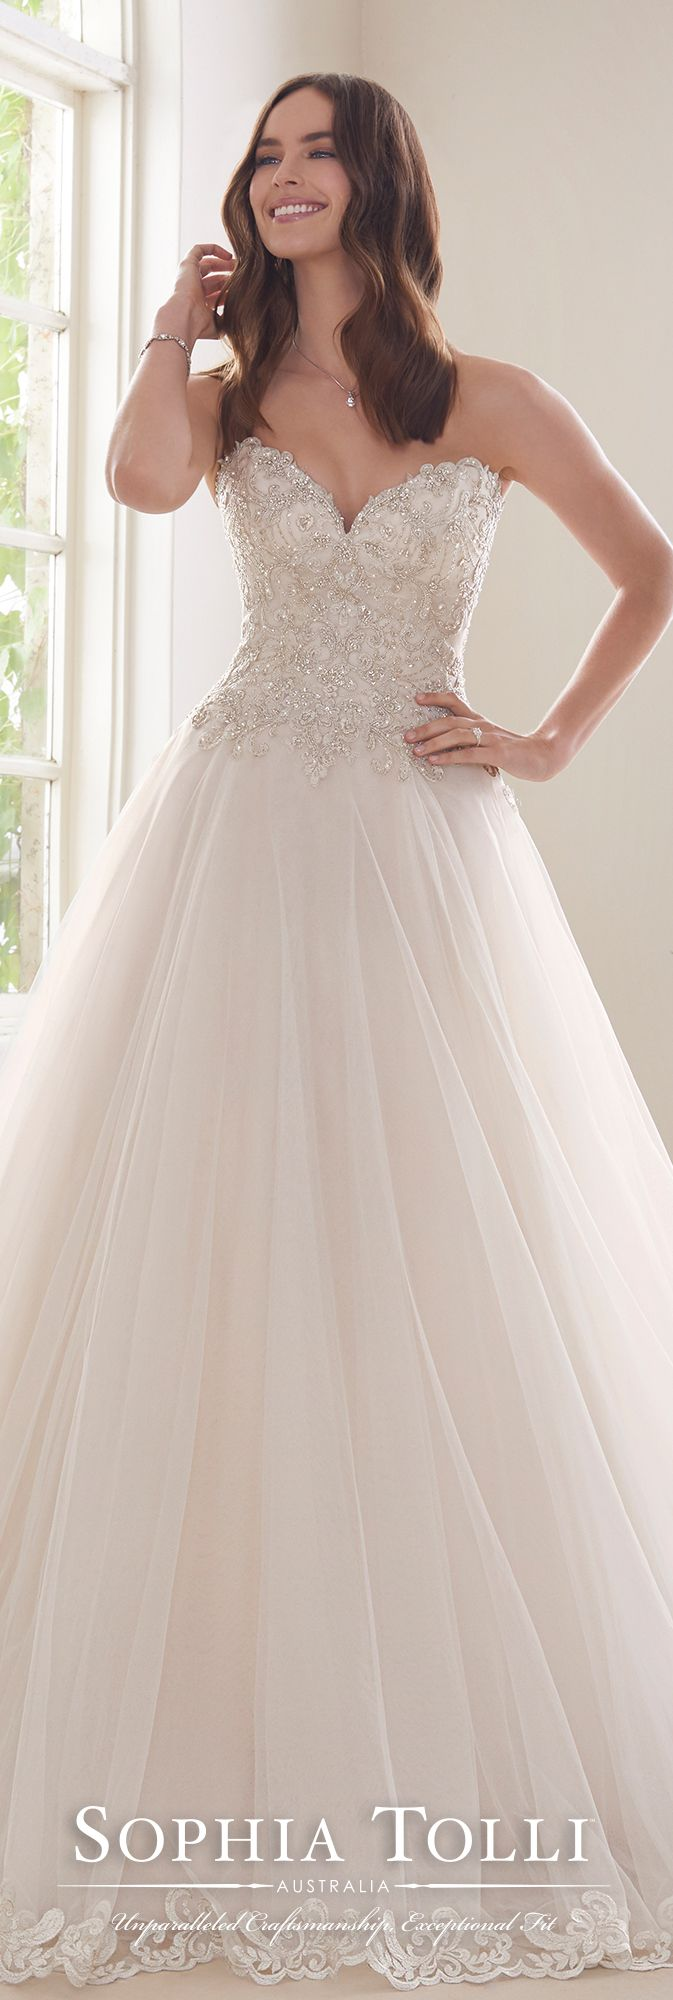 Wedding dresses ball gown sweetheart  Strapless Sweetheart u Misty Tulle Ballgown Wedding Dress  Wedding